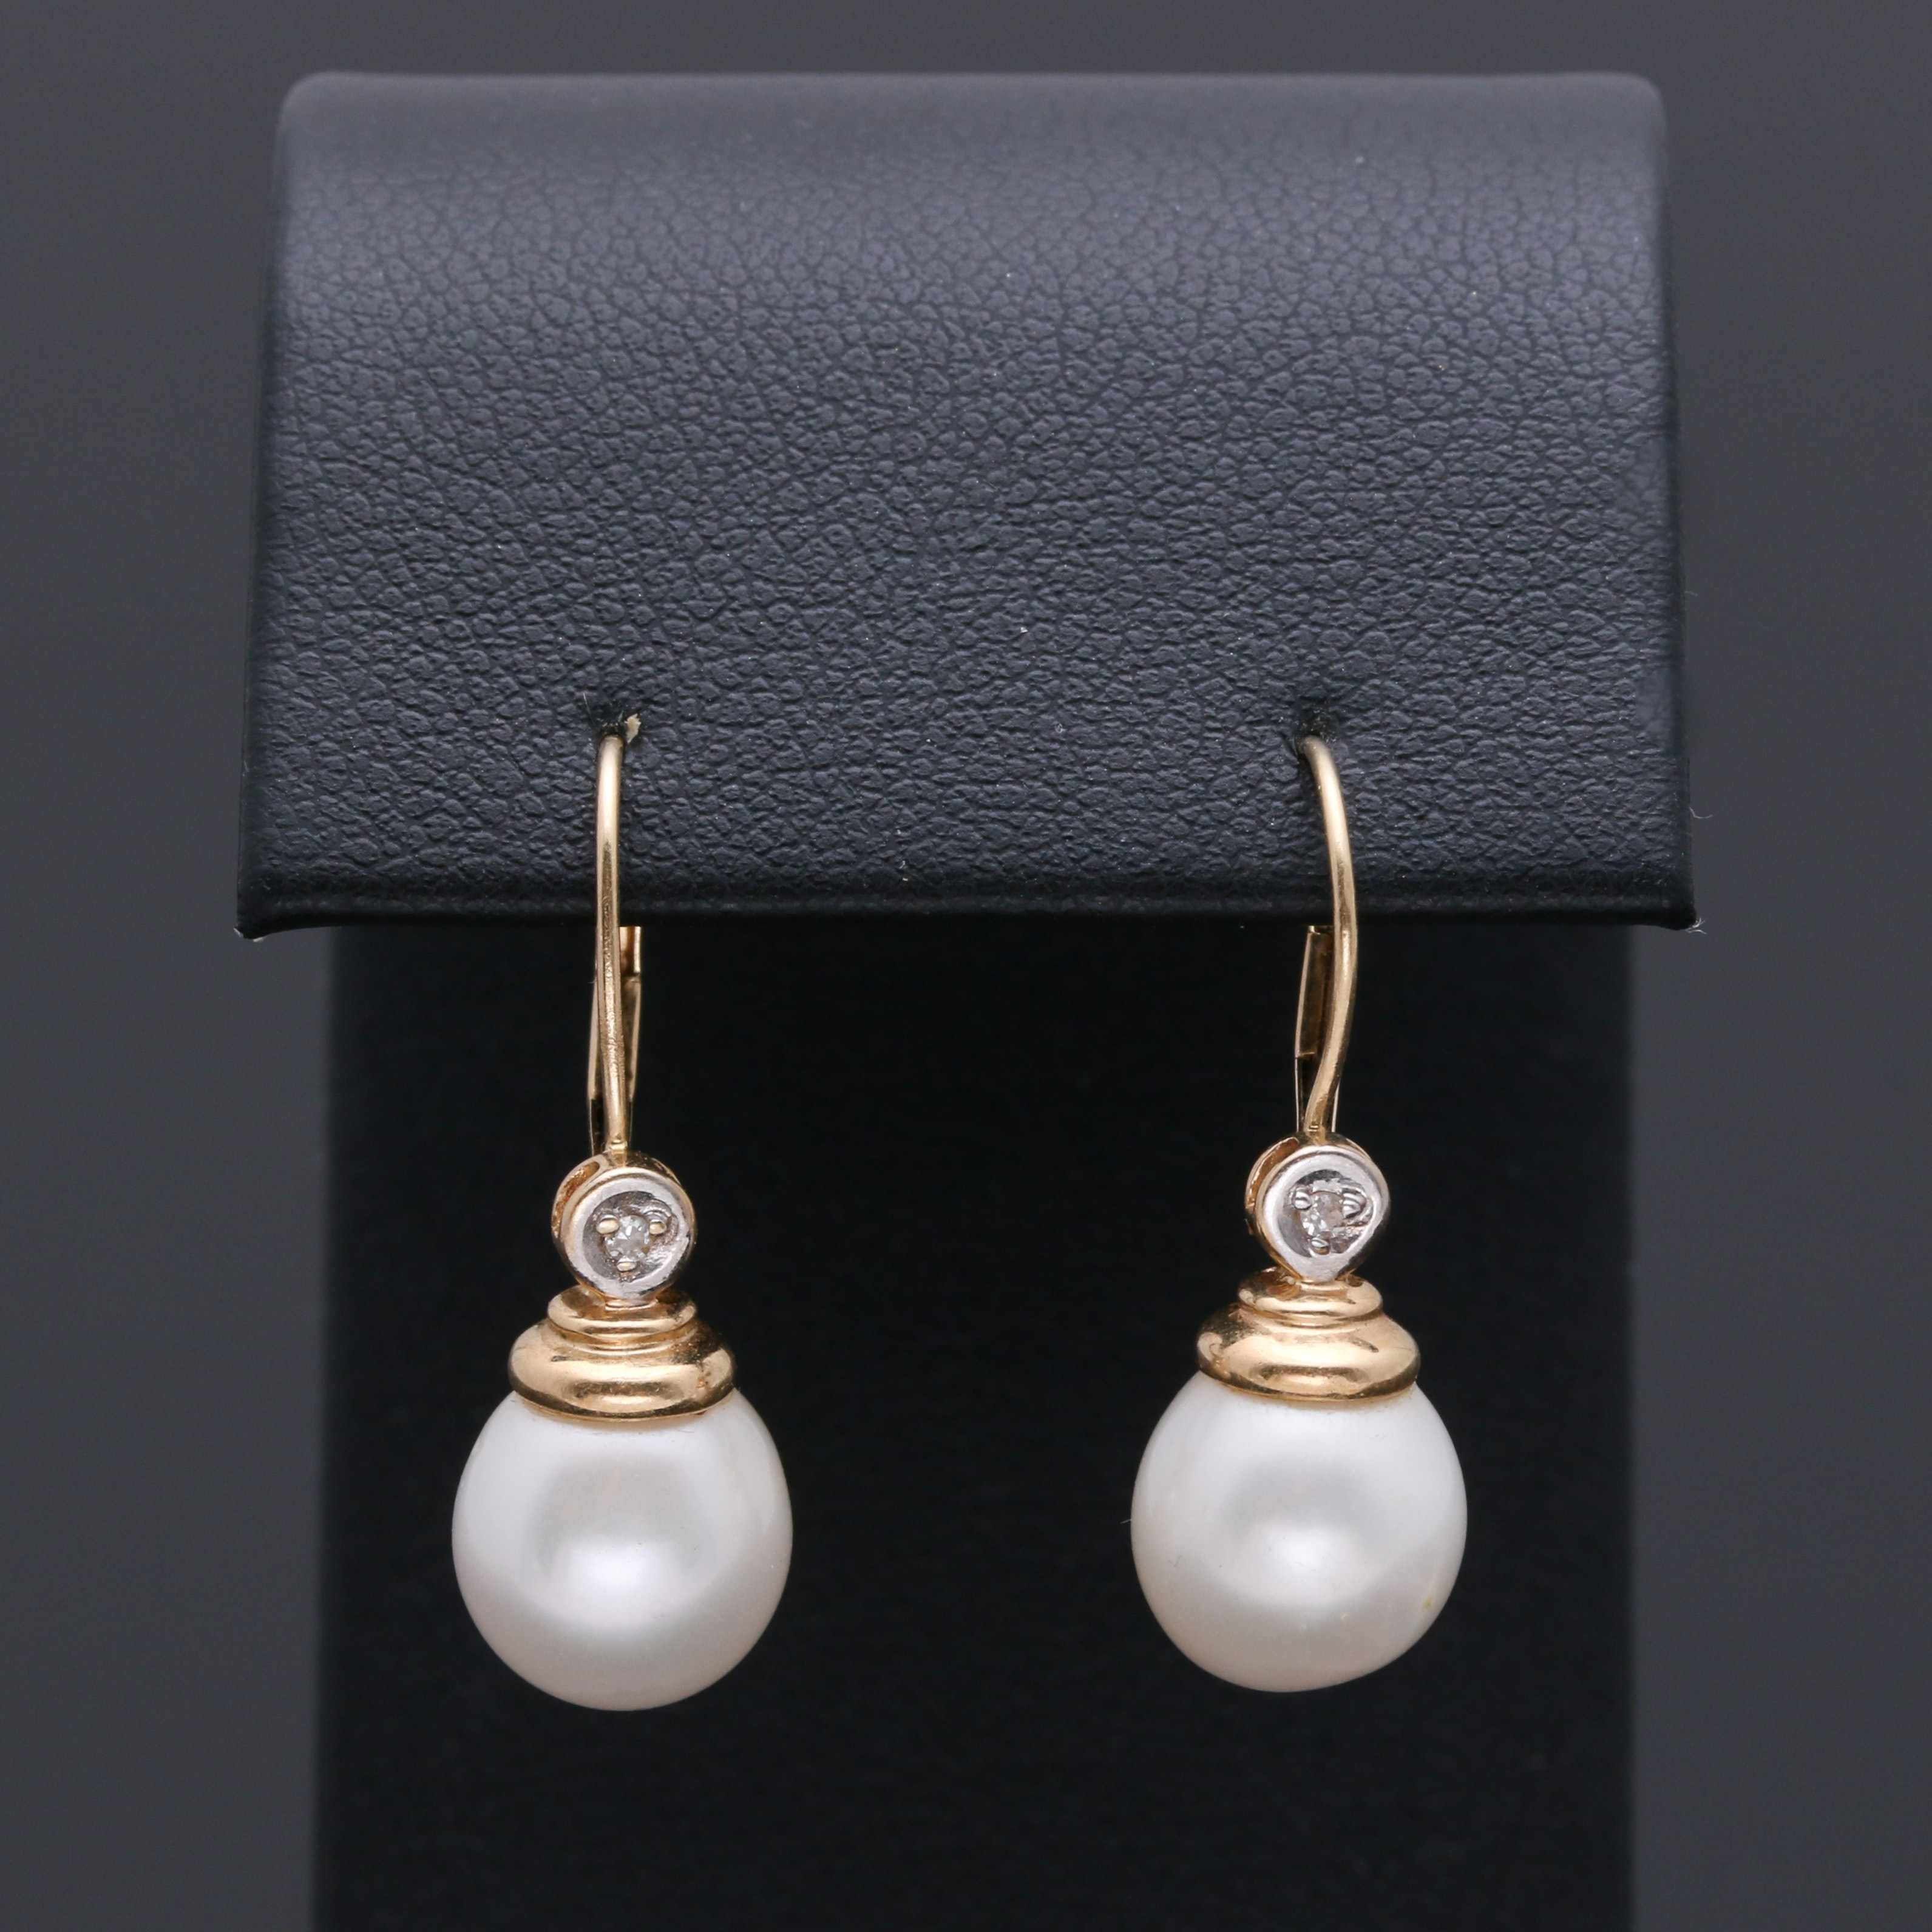 14K Yellow Gold Diamond and Cultured Pearl Drop Earrings